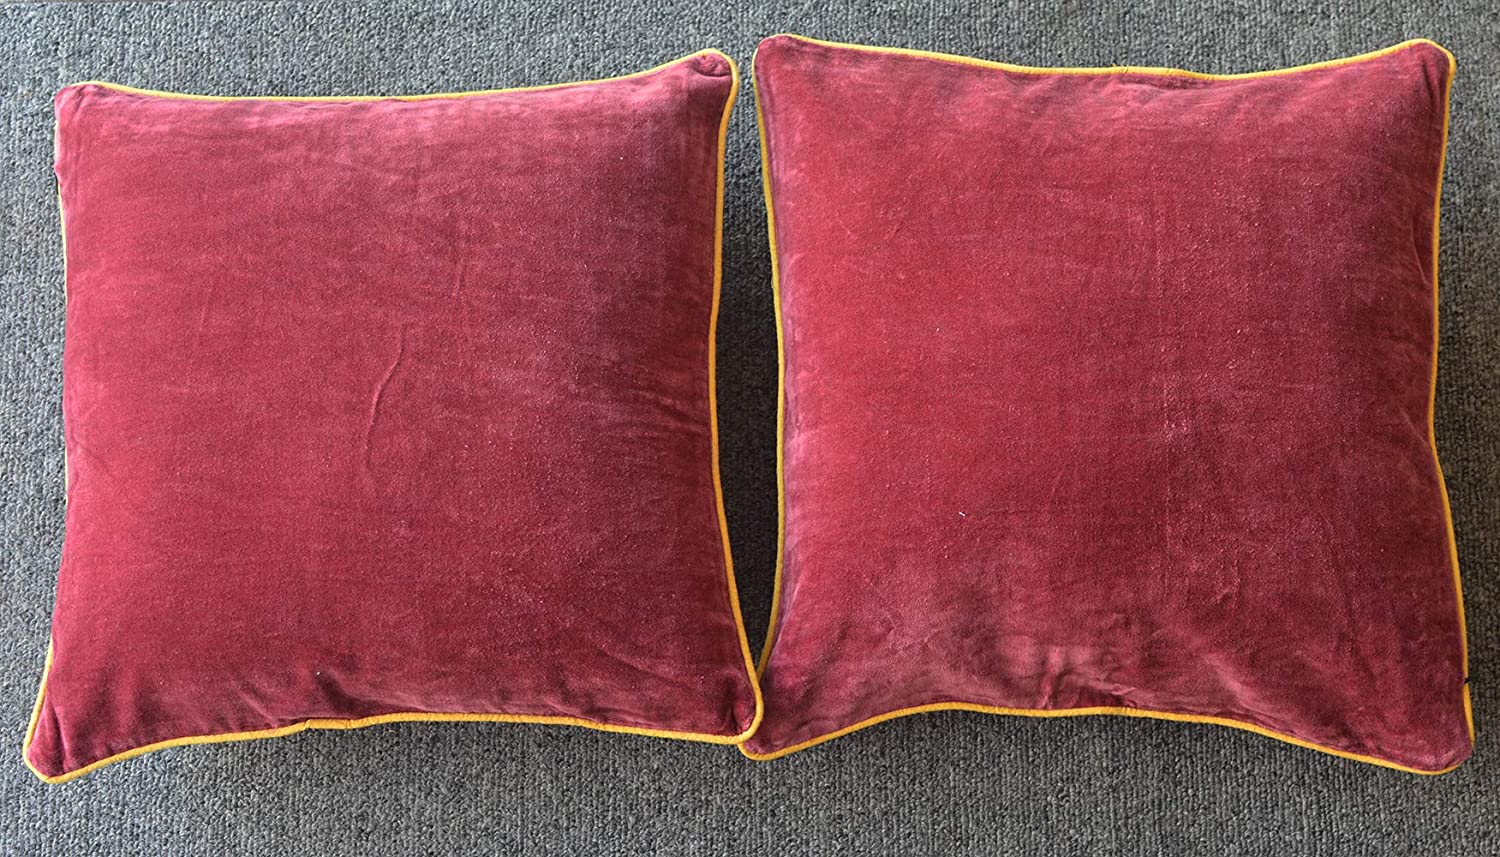 LA LUCIDO Set of 2 Matt-Effect Luxurious Velvet Throw Pillow Covers Decorative Square Cushion Covers Set Sofa Bedroom Piping Maroon